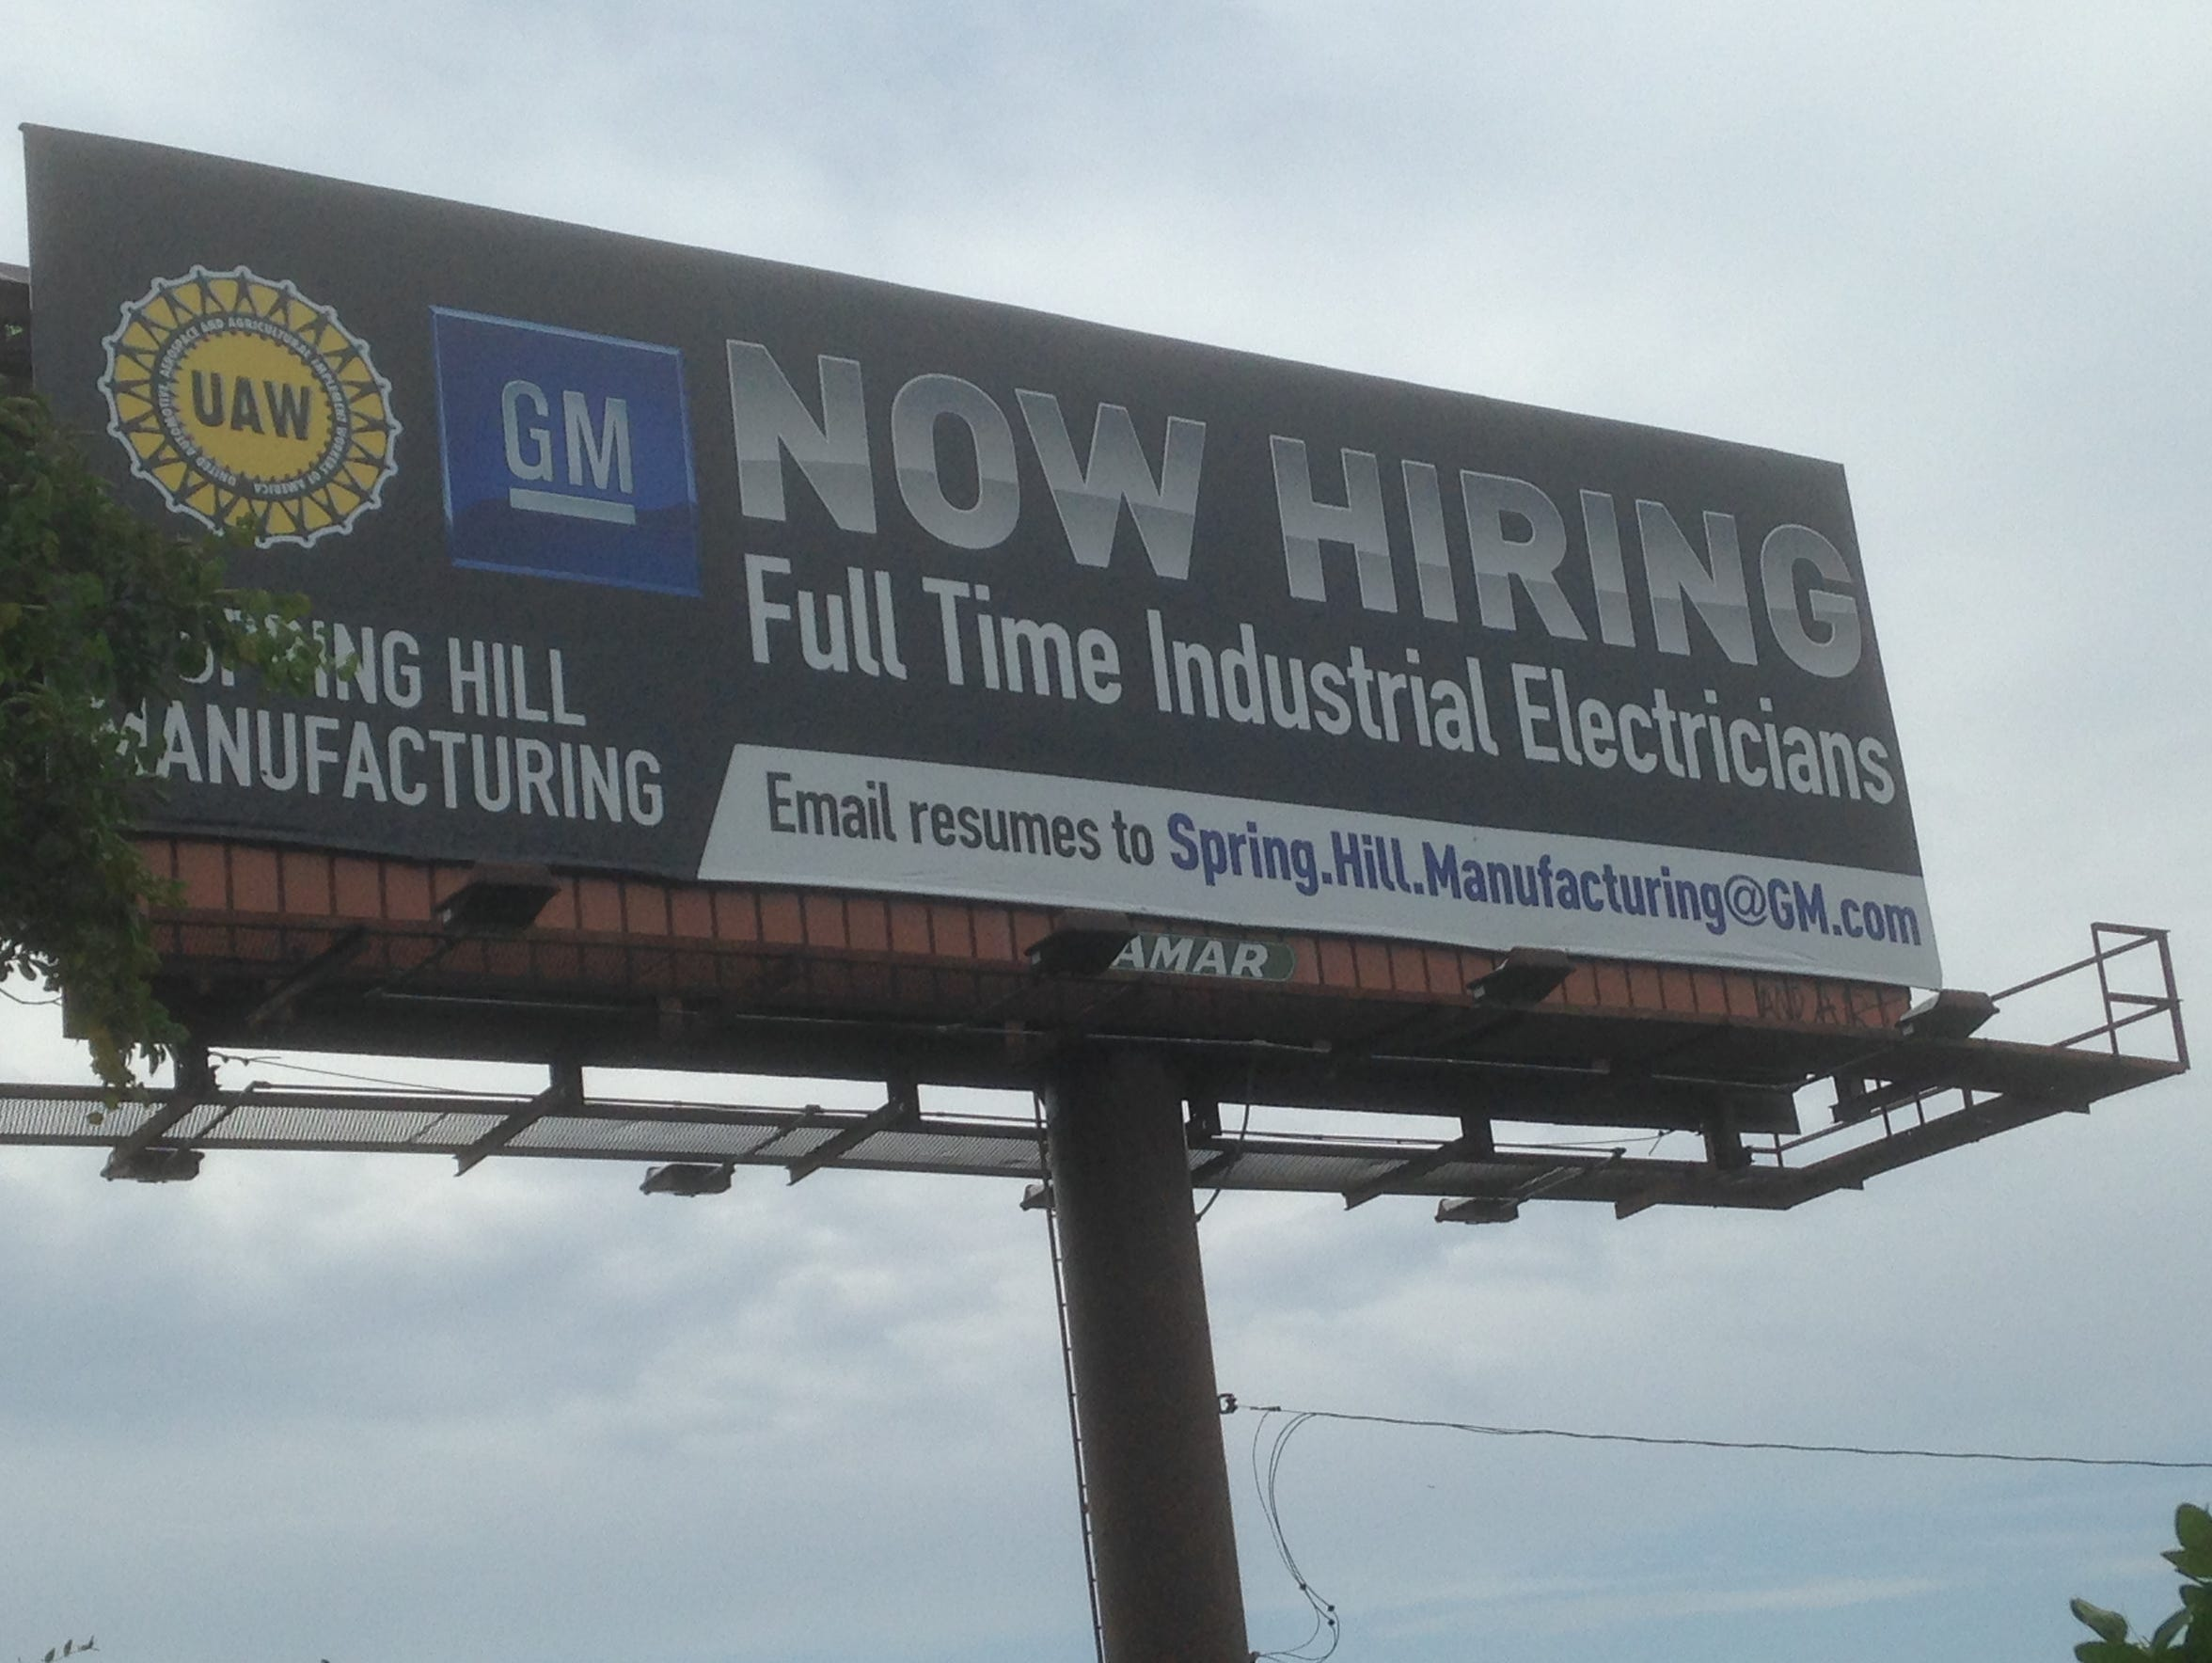 This UAW GM billboard is located on the north side